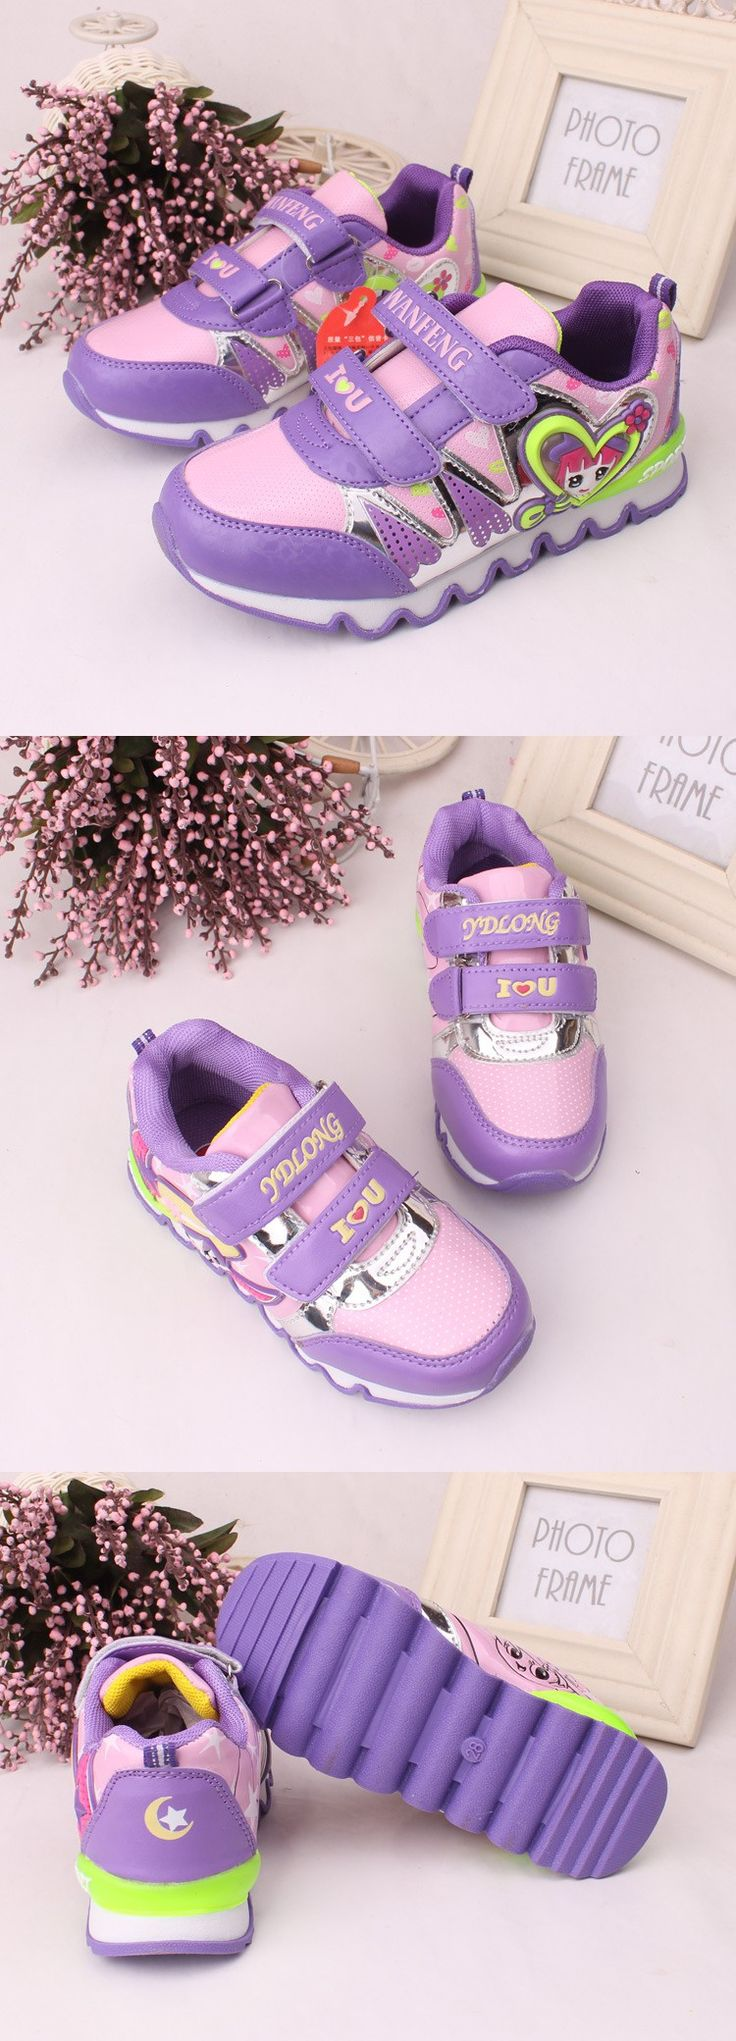 2016 New PU Leather Kids Shoes Girls Shoes, Waterproof Children Shoes Sneakers, Chaussure Enfant, Shoes For Girls,Tenis Infantil